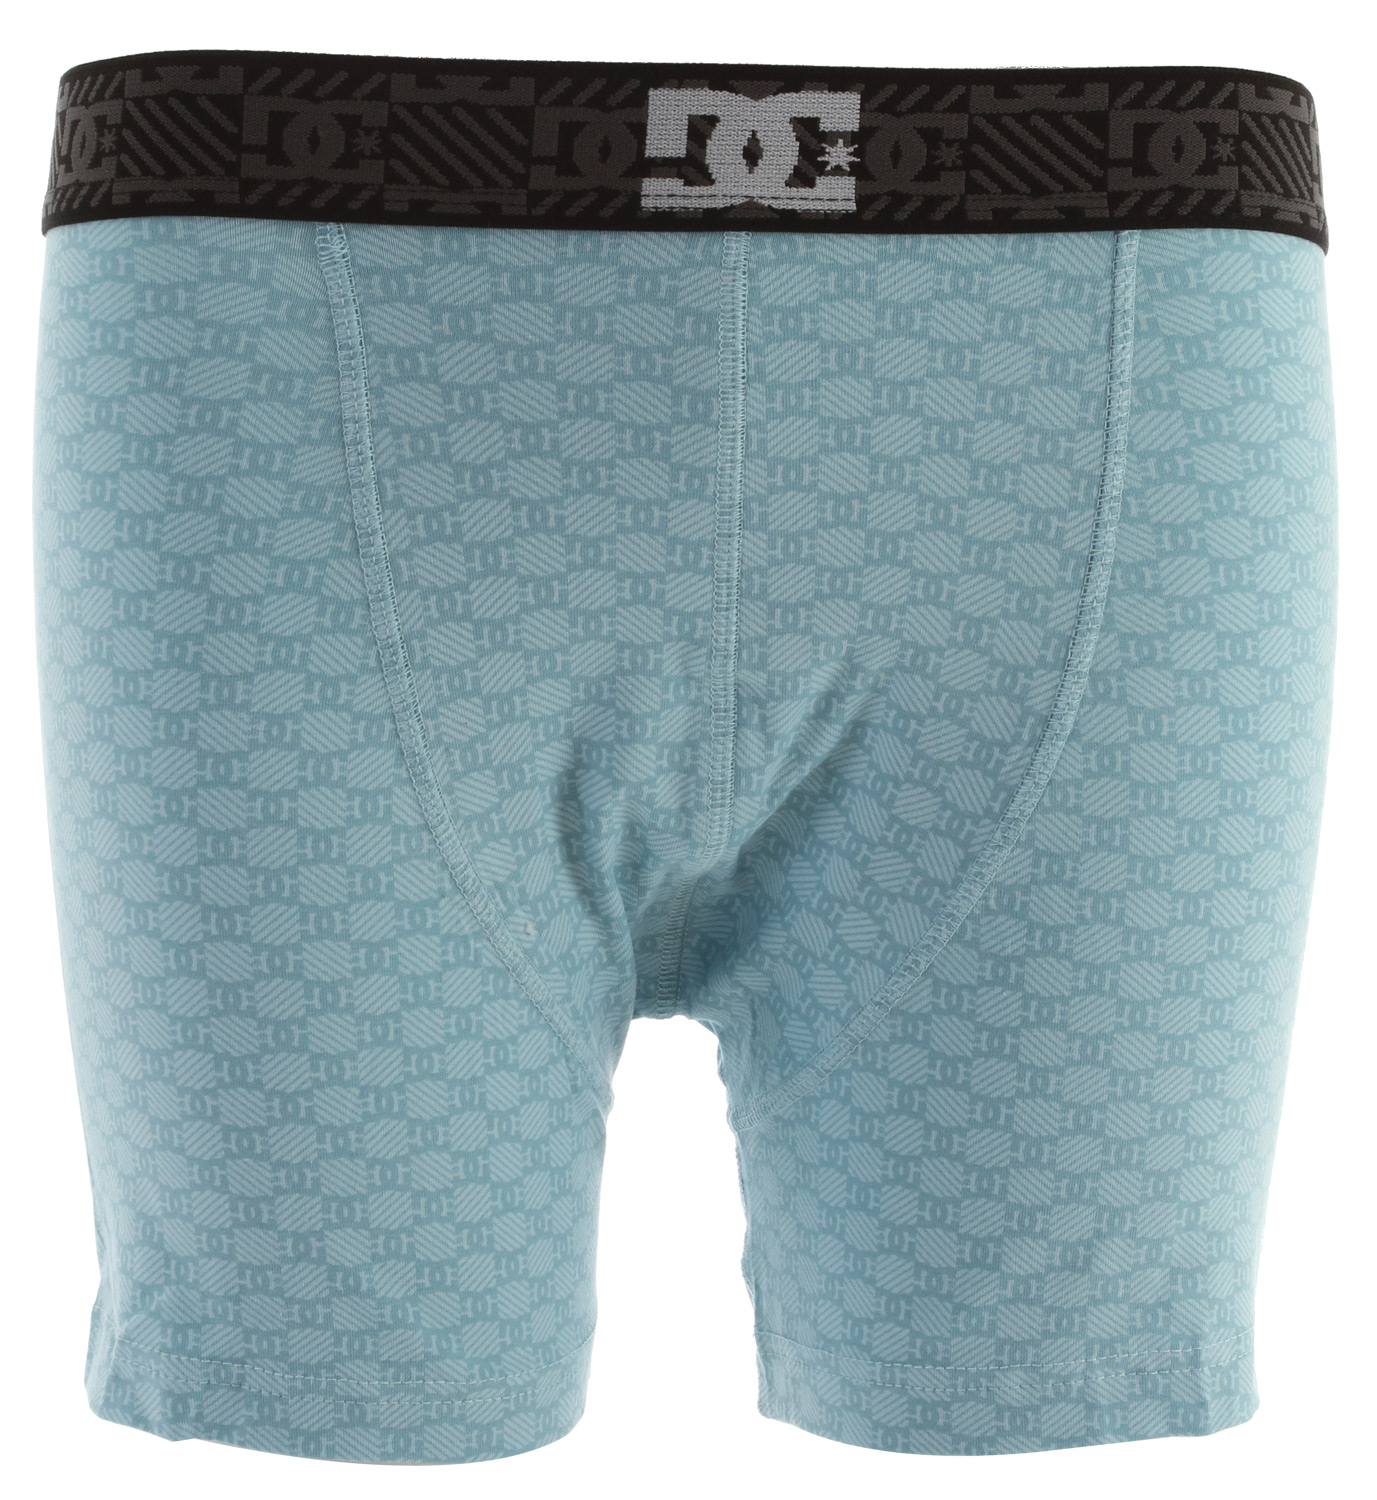 Knit Boxer 90% Cotton/10% Spandex Knit boxer with contrast large logo on a bias at side of boxer jacquarded monogram waistband with front DC logo - $9.95